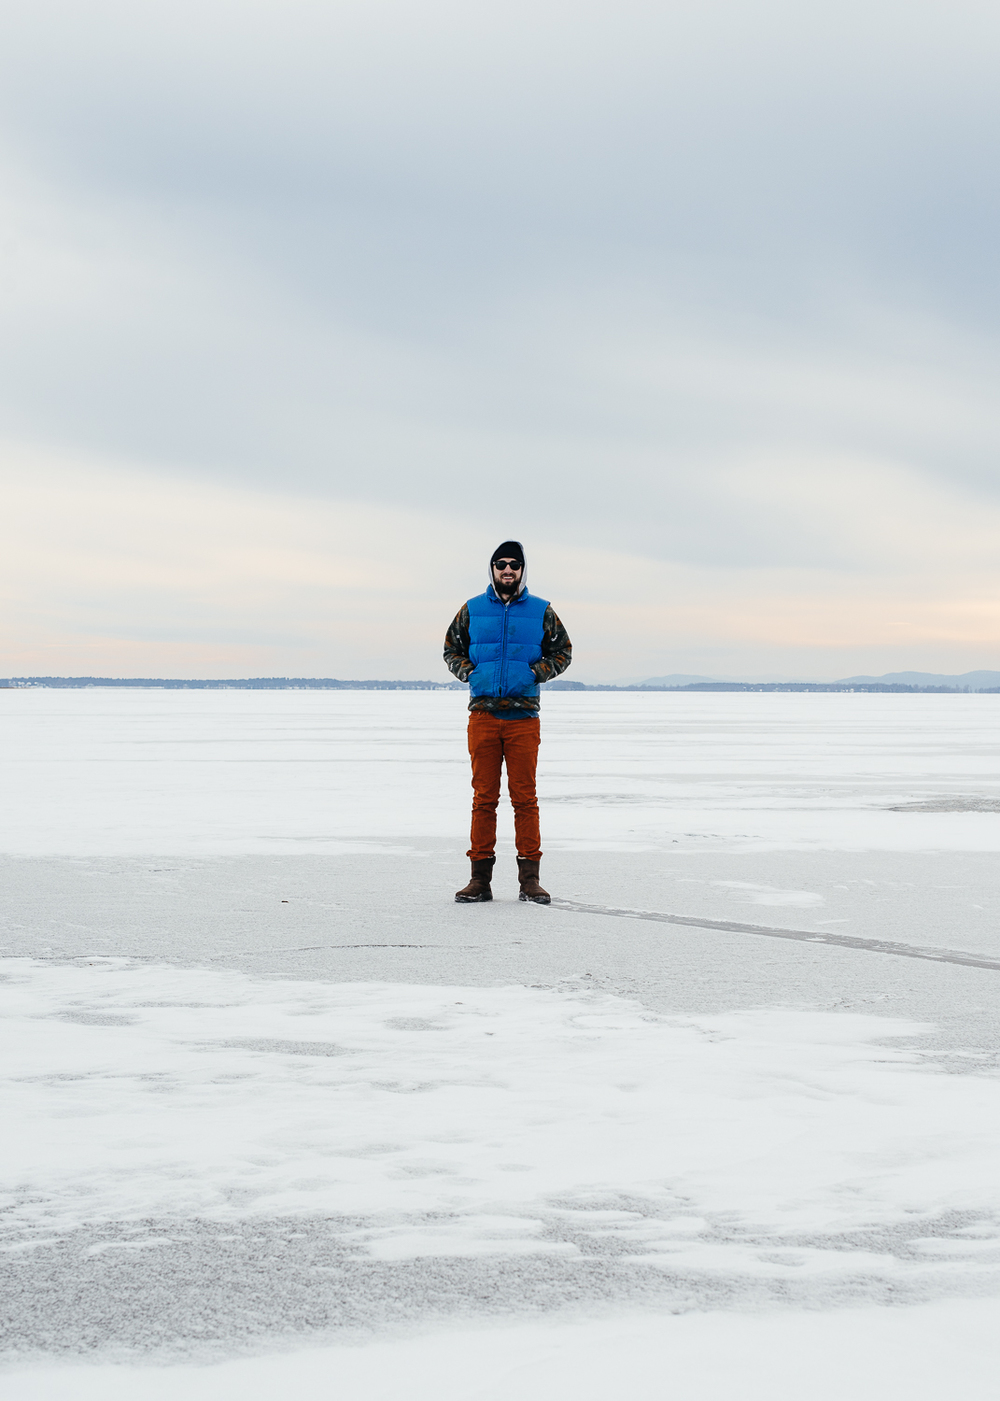 Nick on the frozen Lake Champlain.